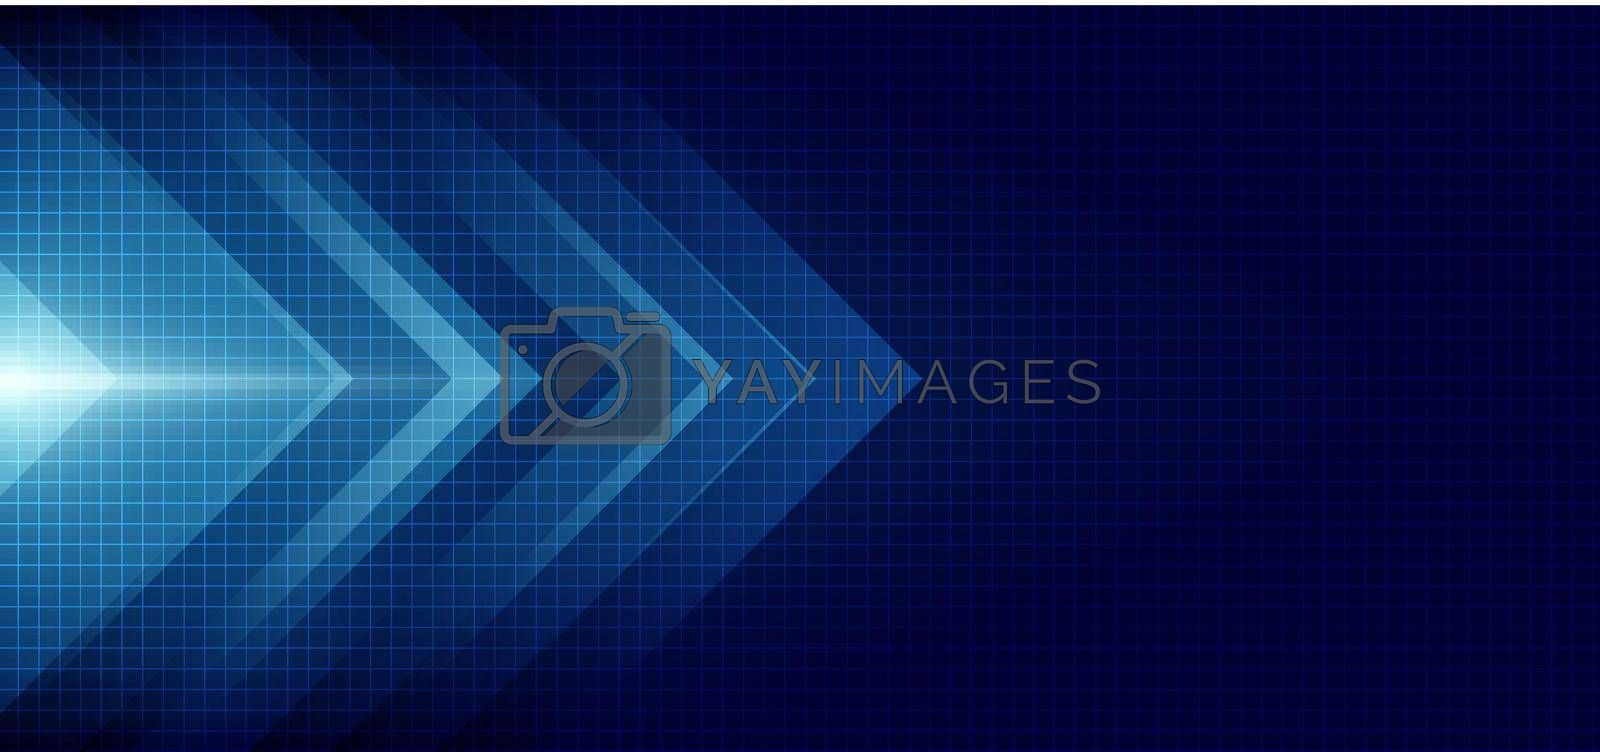 Royalty free image of Abstract blue arrow glowing with lighting and line grid on blue background technology hi-tech concept by phochi